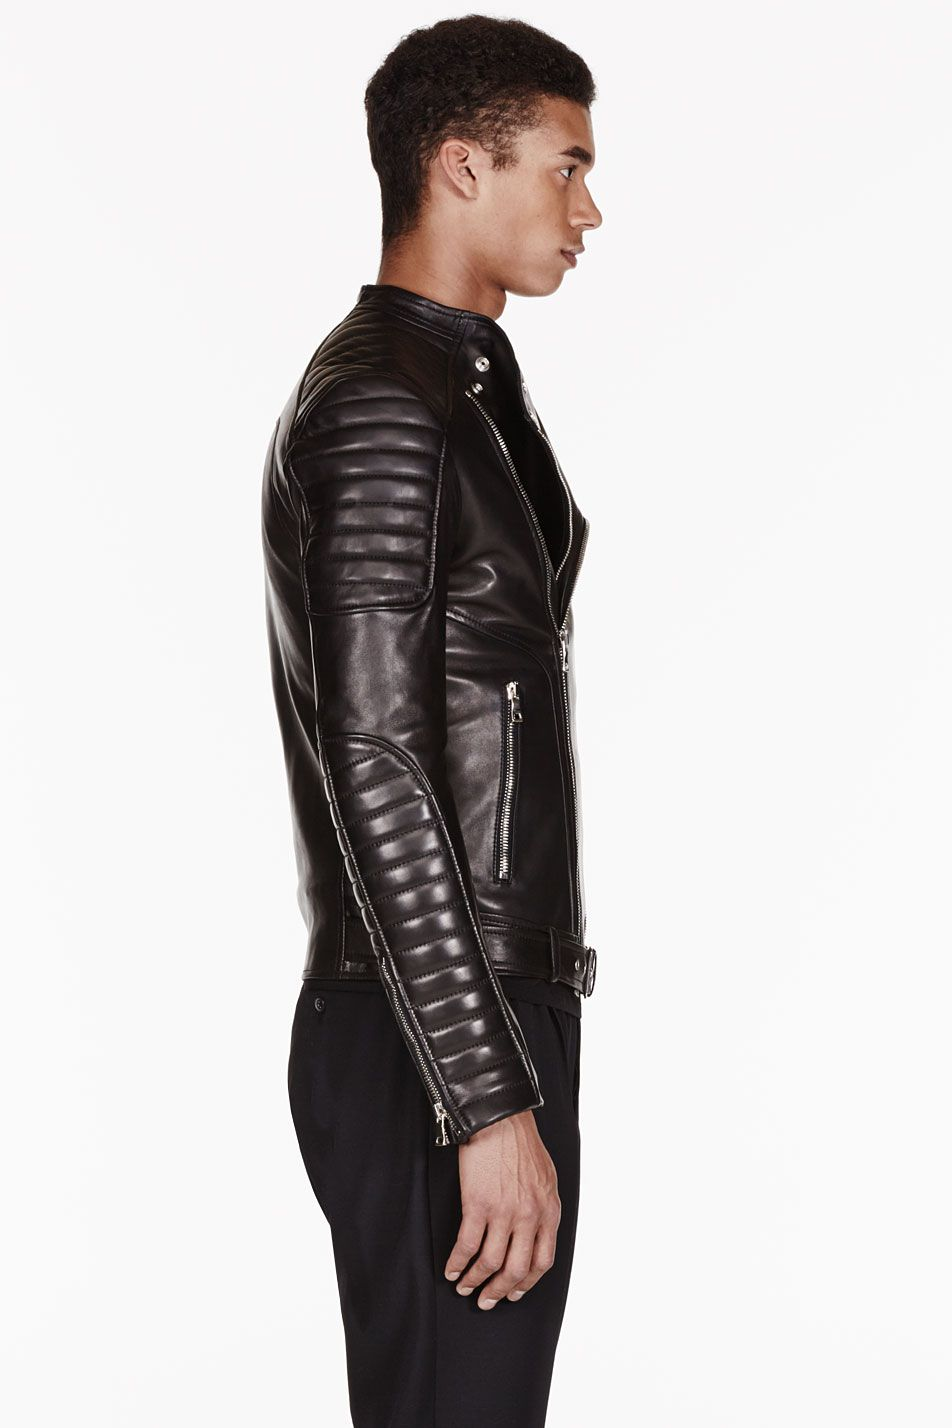 % AUTHENTIC Balmain Paris black biker leather jacket, buttery soft lambskin with unique lemkecollier.ga of the best leather pieces you can buy, worn by countless superstars and celebrities, also persona.